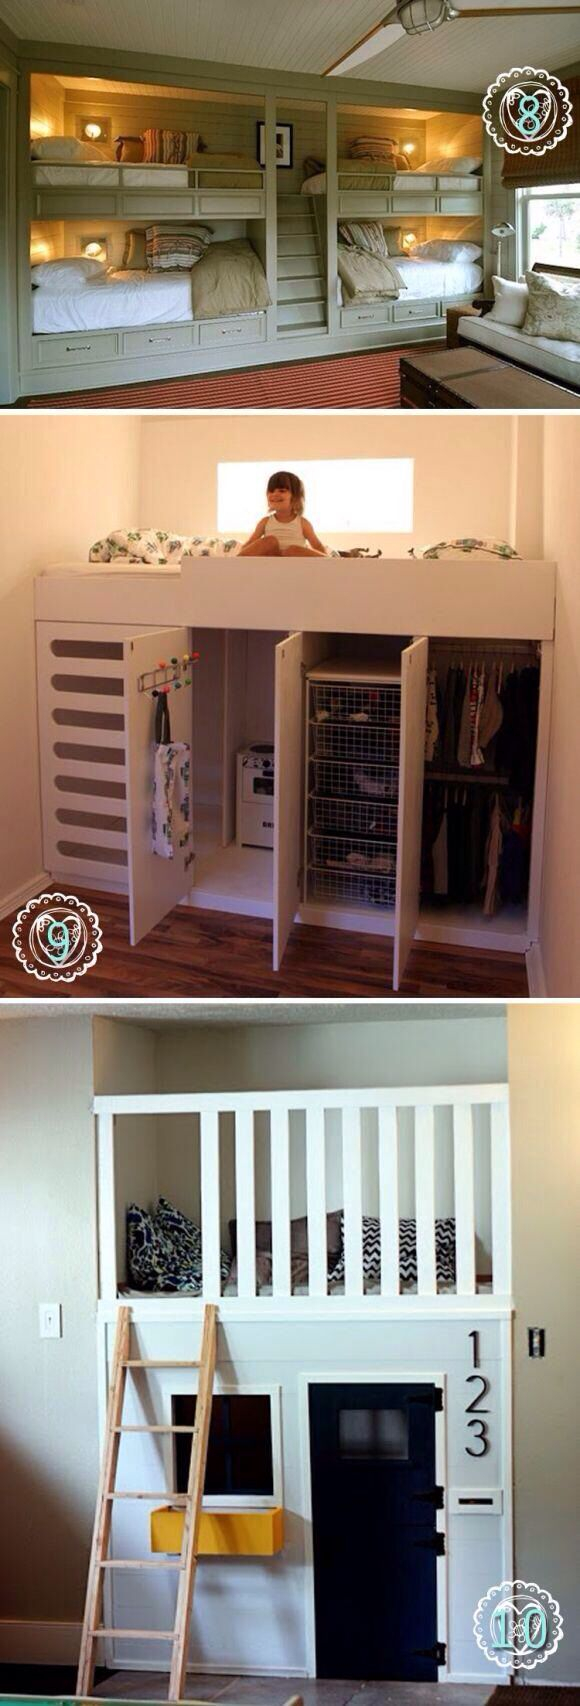 the last one is my favorite a little play house below the bunk bed is a genius idea cool bedrooms with stairs